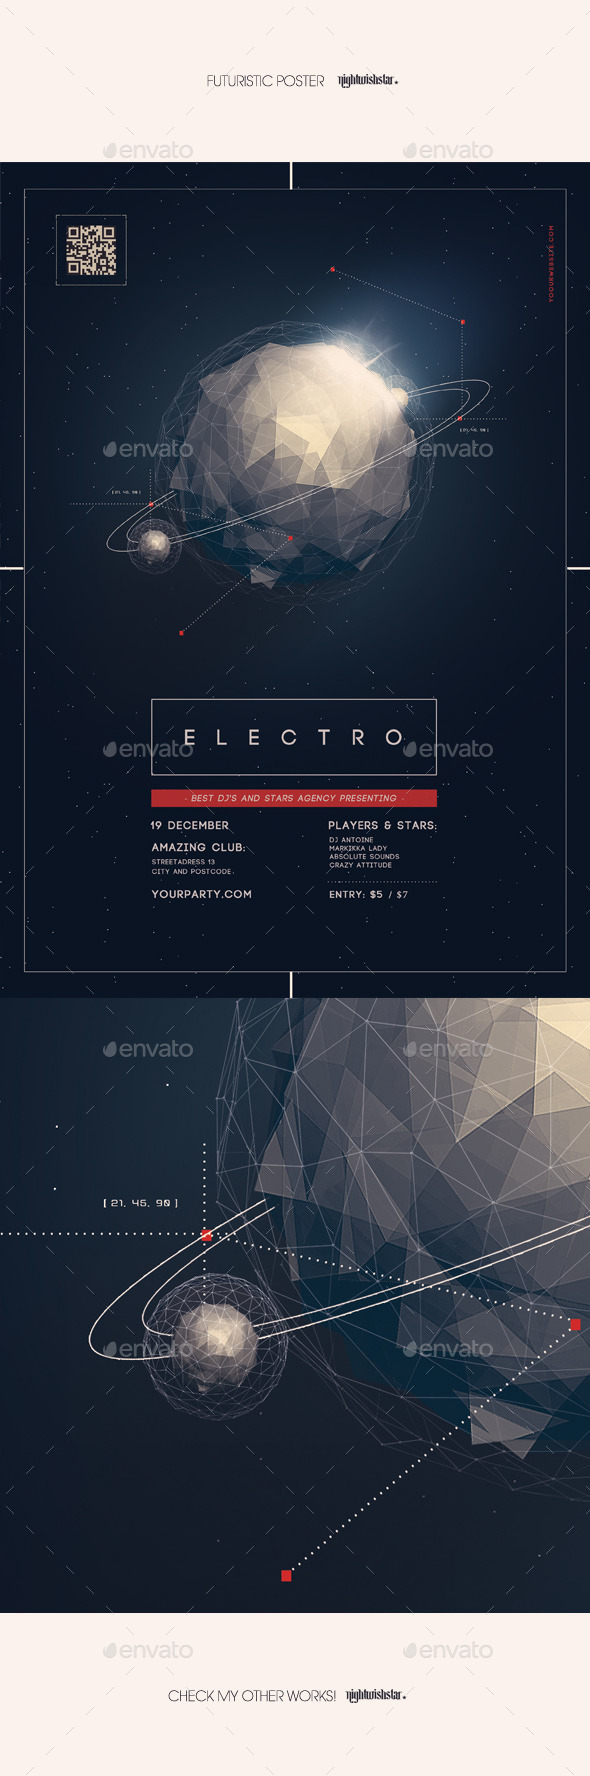 GraphicRiver Futuristic Party Poster 9767415